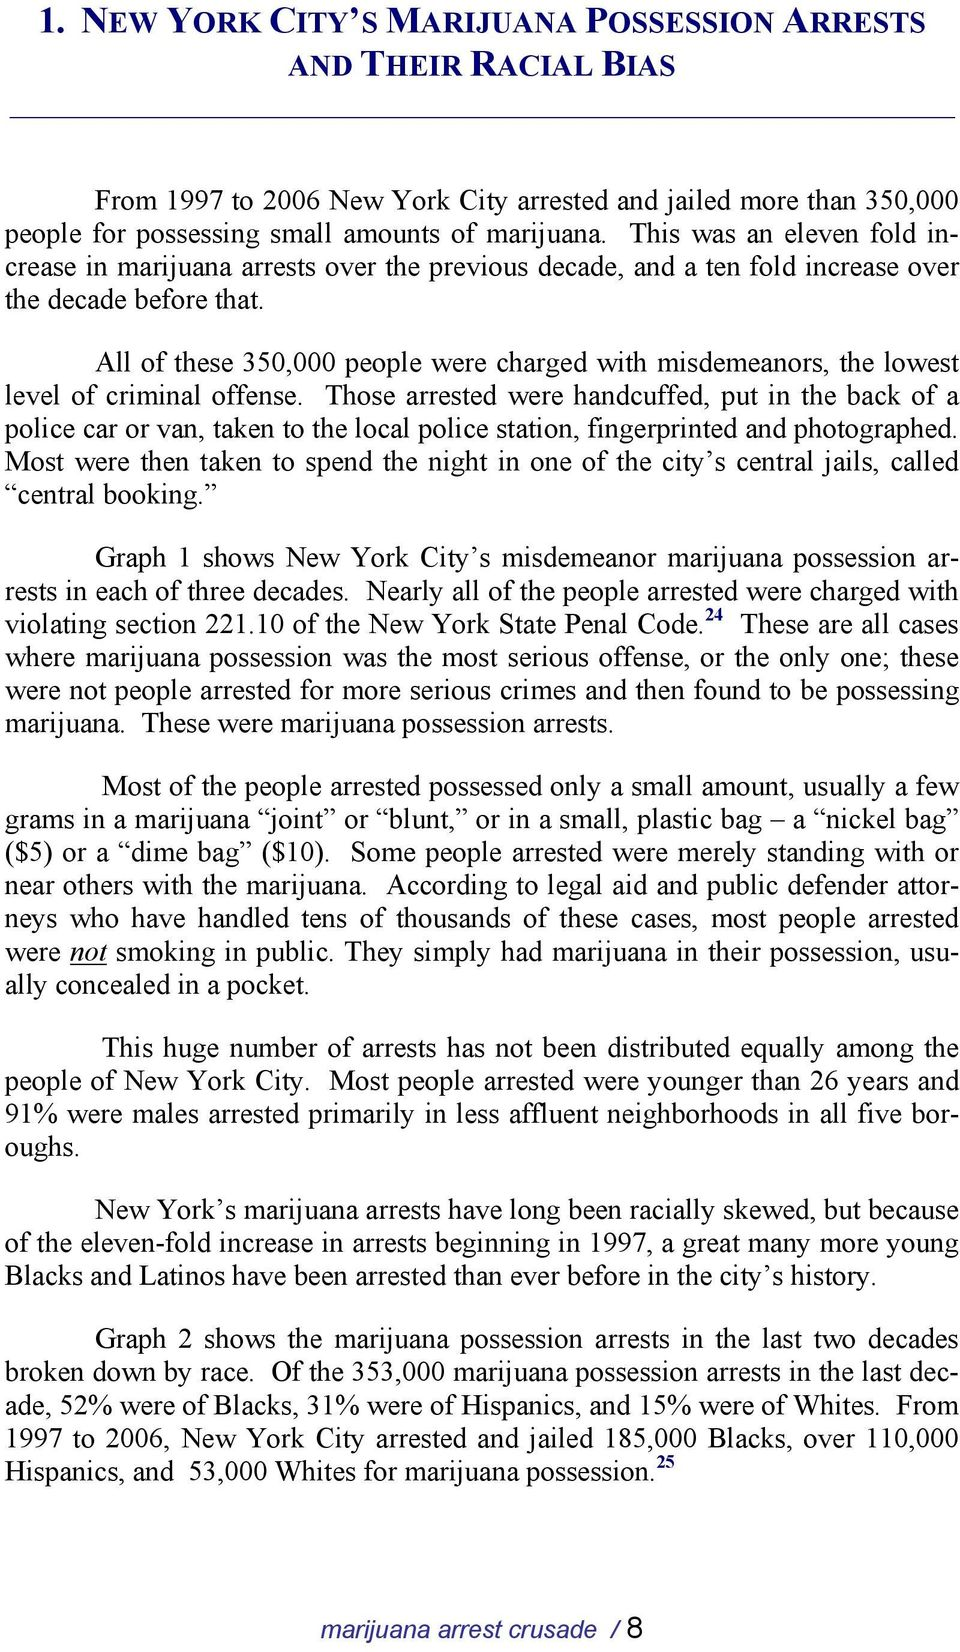 All of these 350,000 people were charged with misdemeanors, the lowest level of criminal offense.